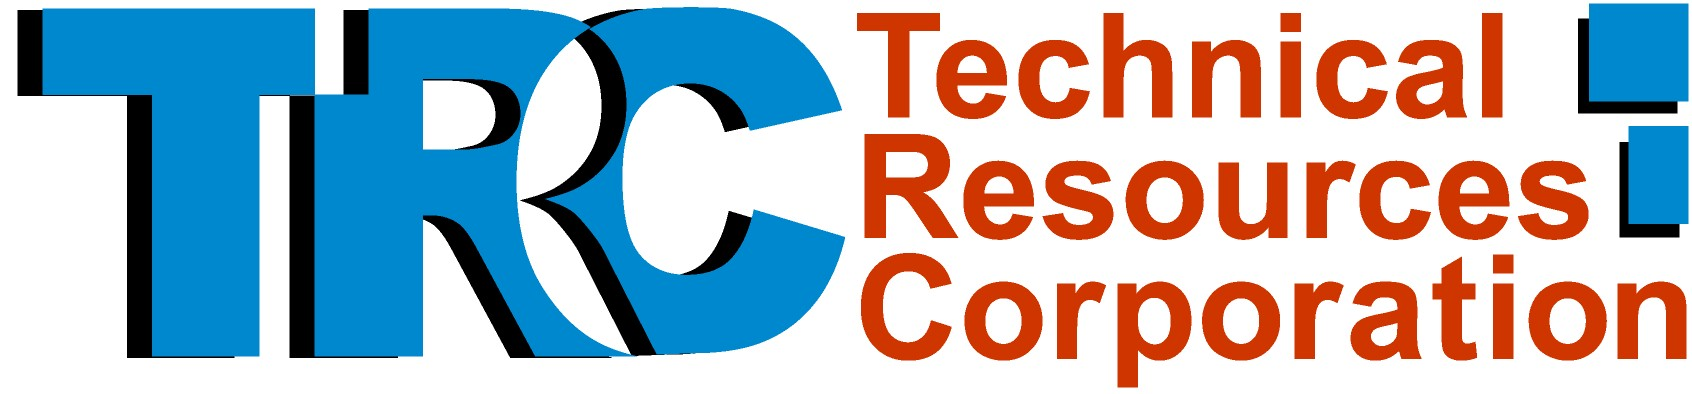 Technical Resources Corporation